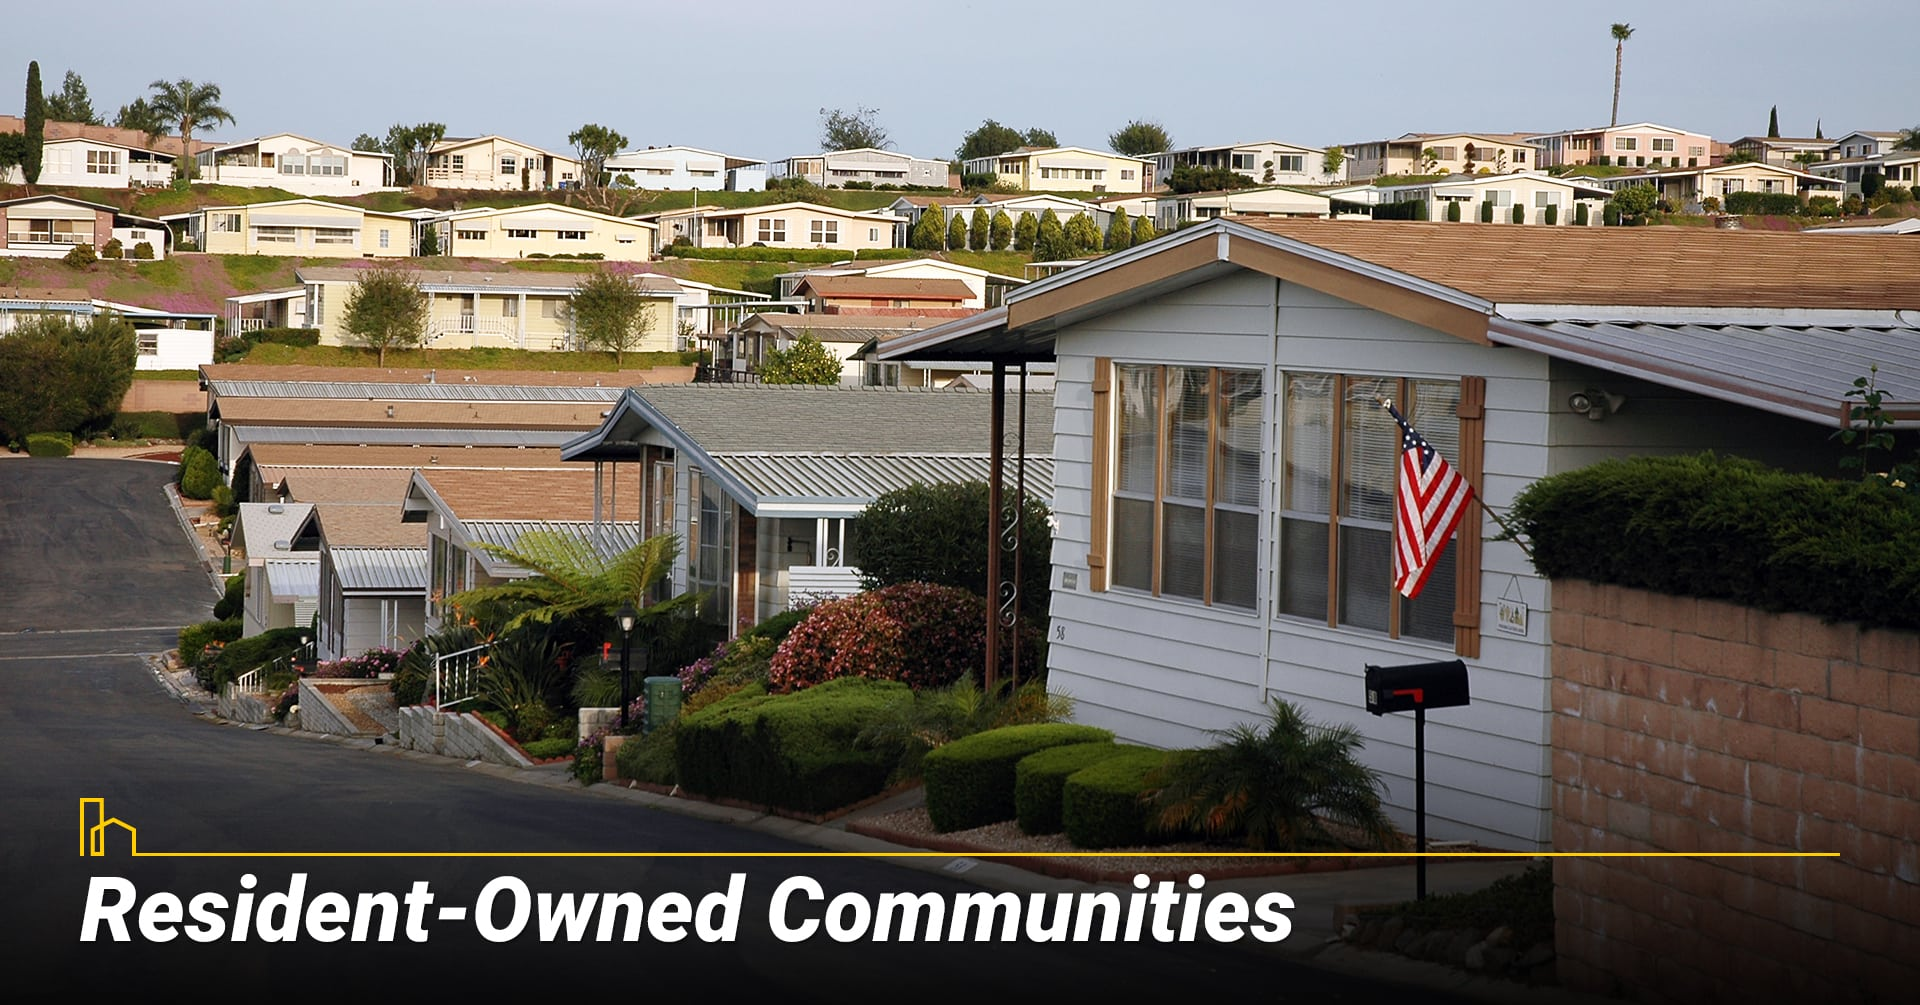 Resident-Owned Communities